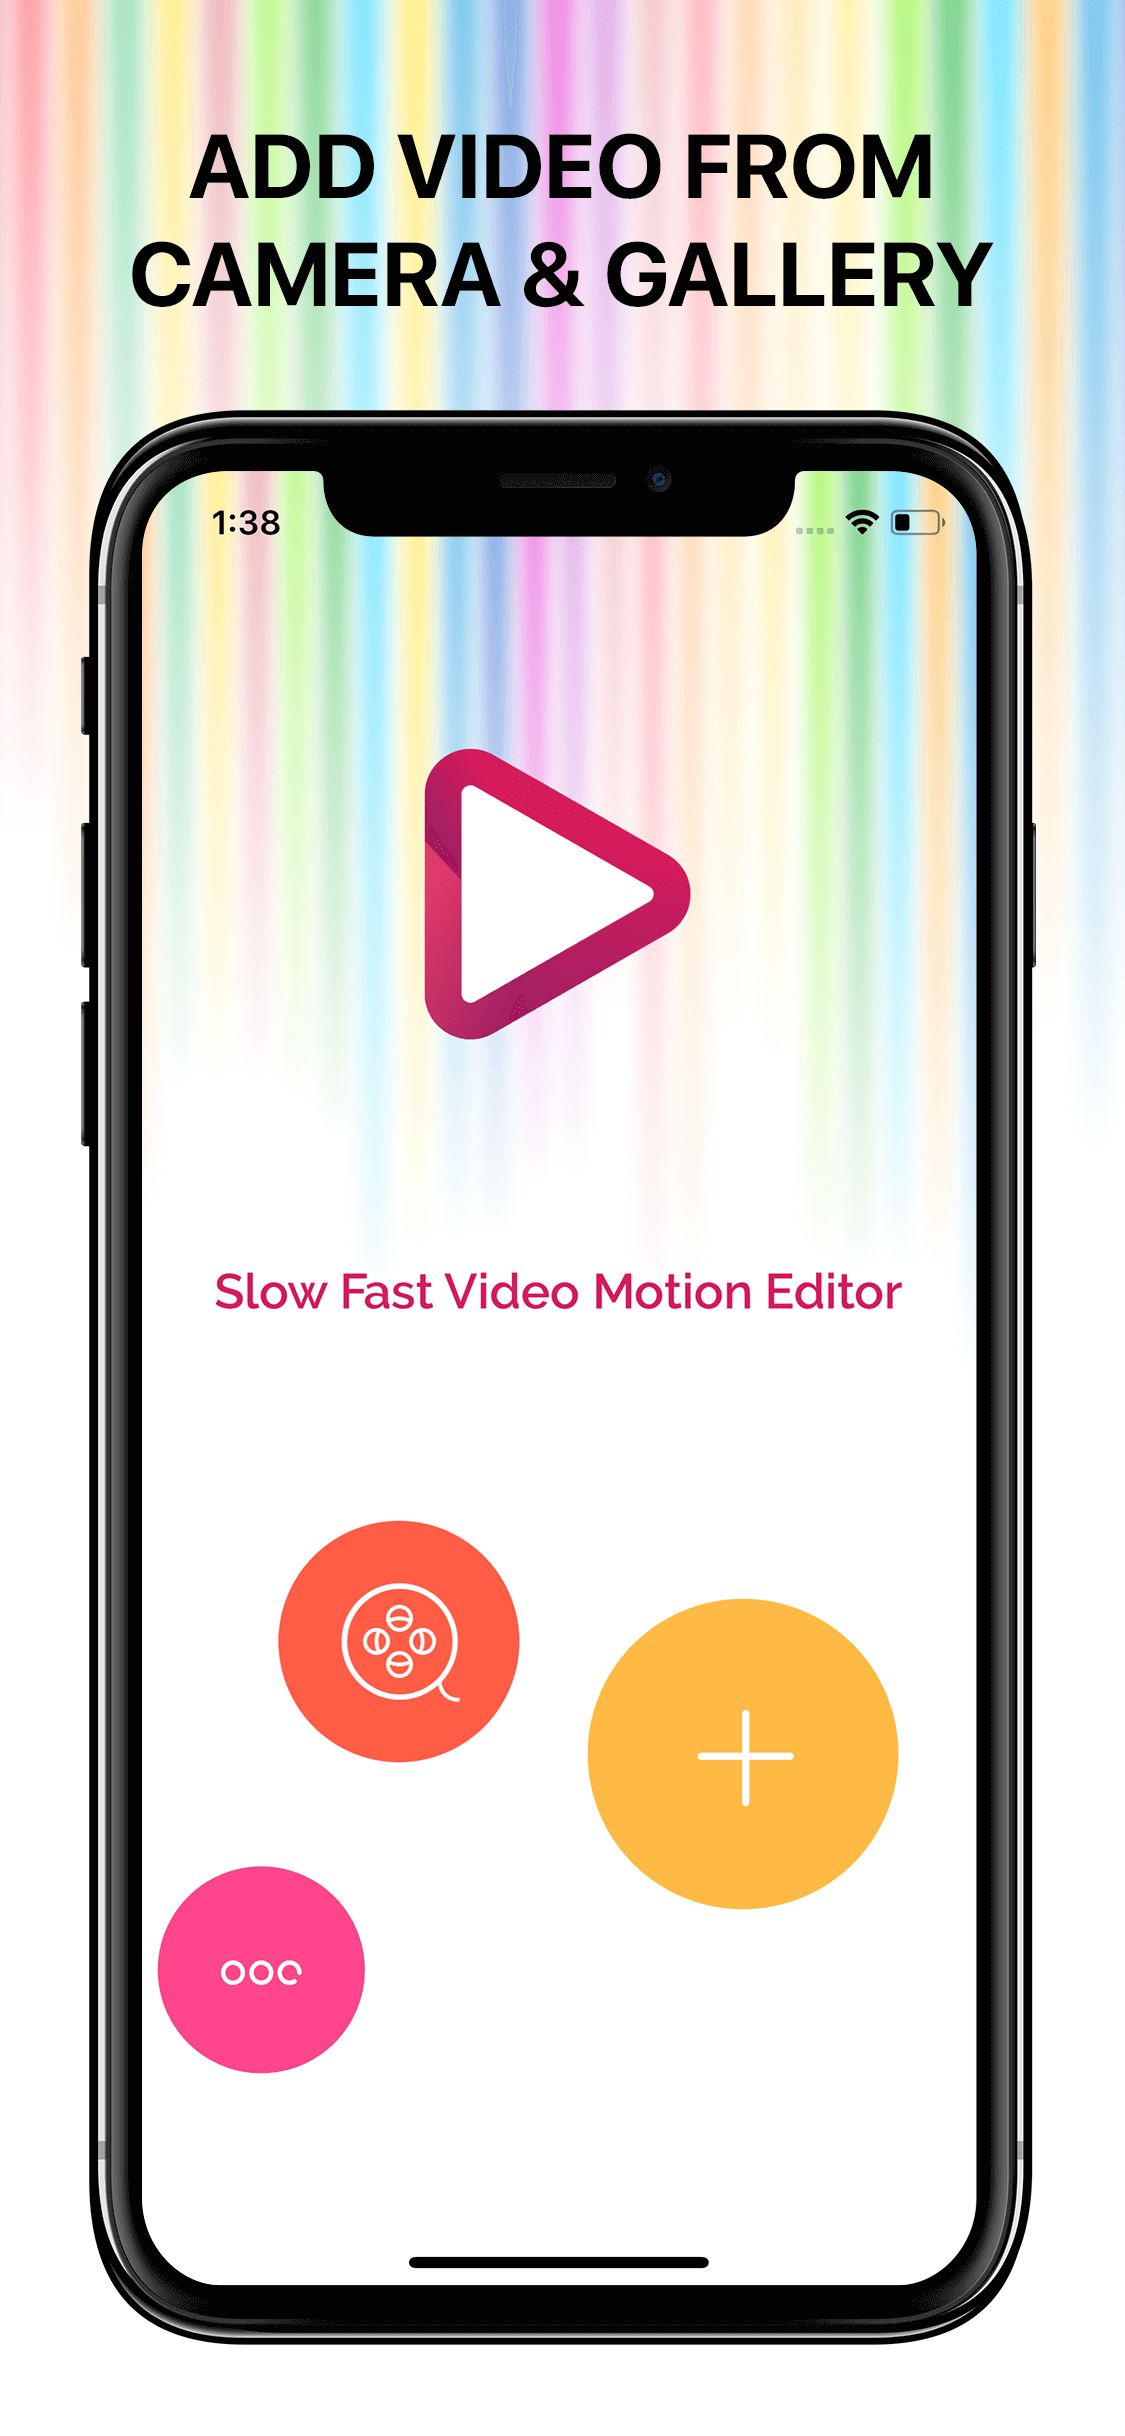 Slow Fast Motion Video Editor iOS Screenshot 1